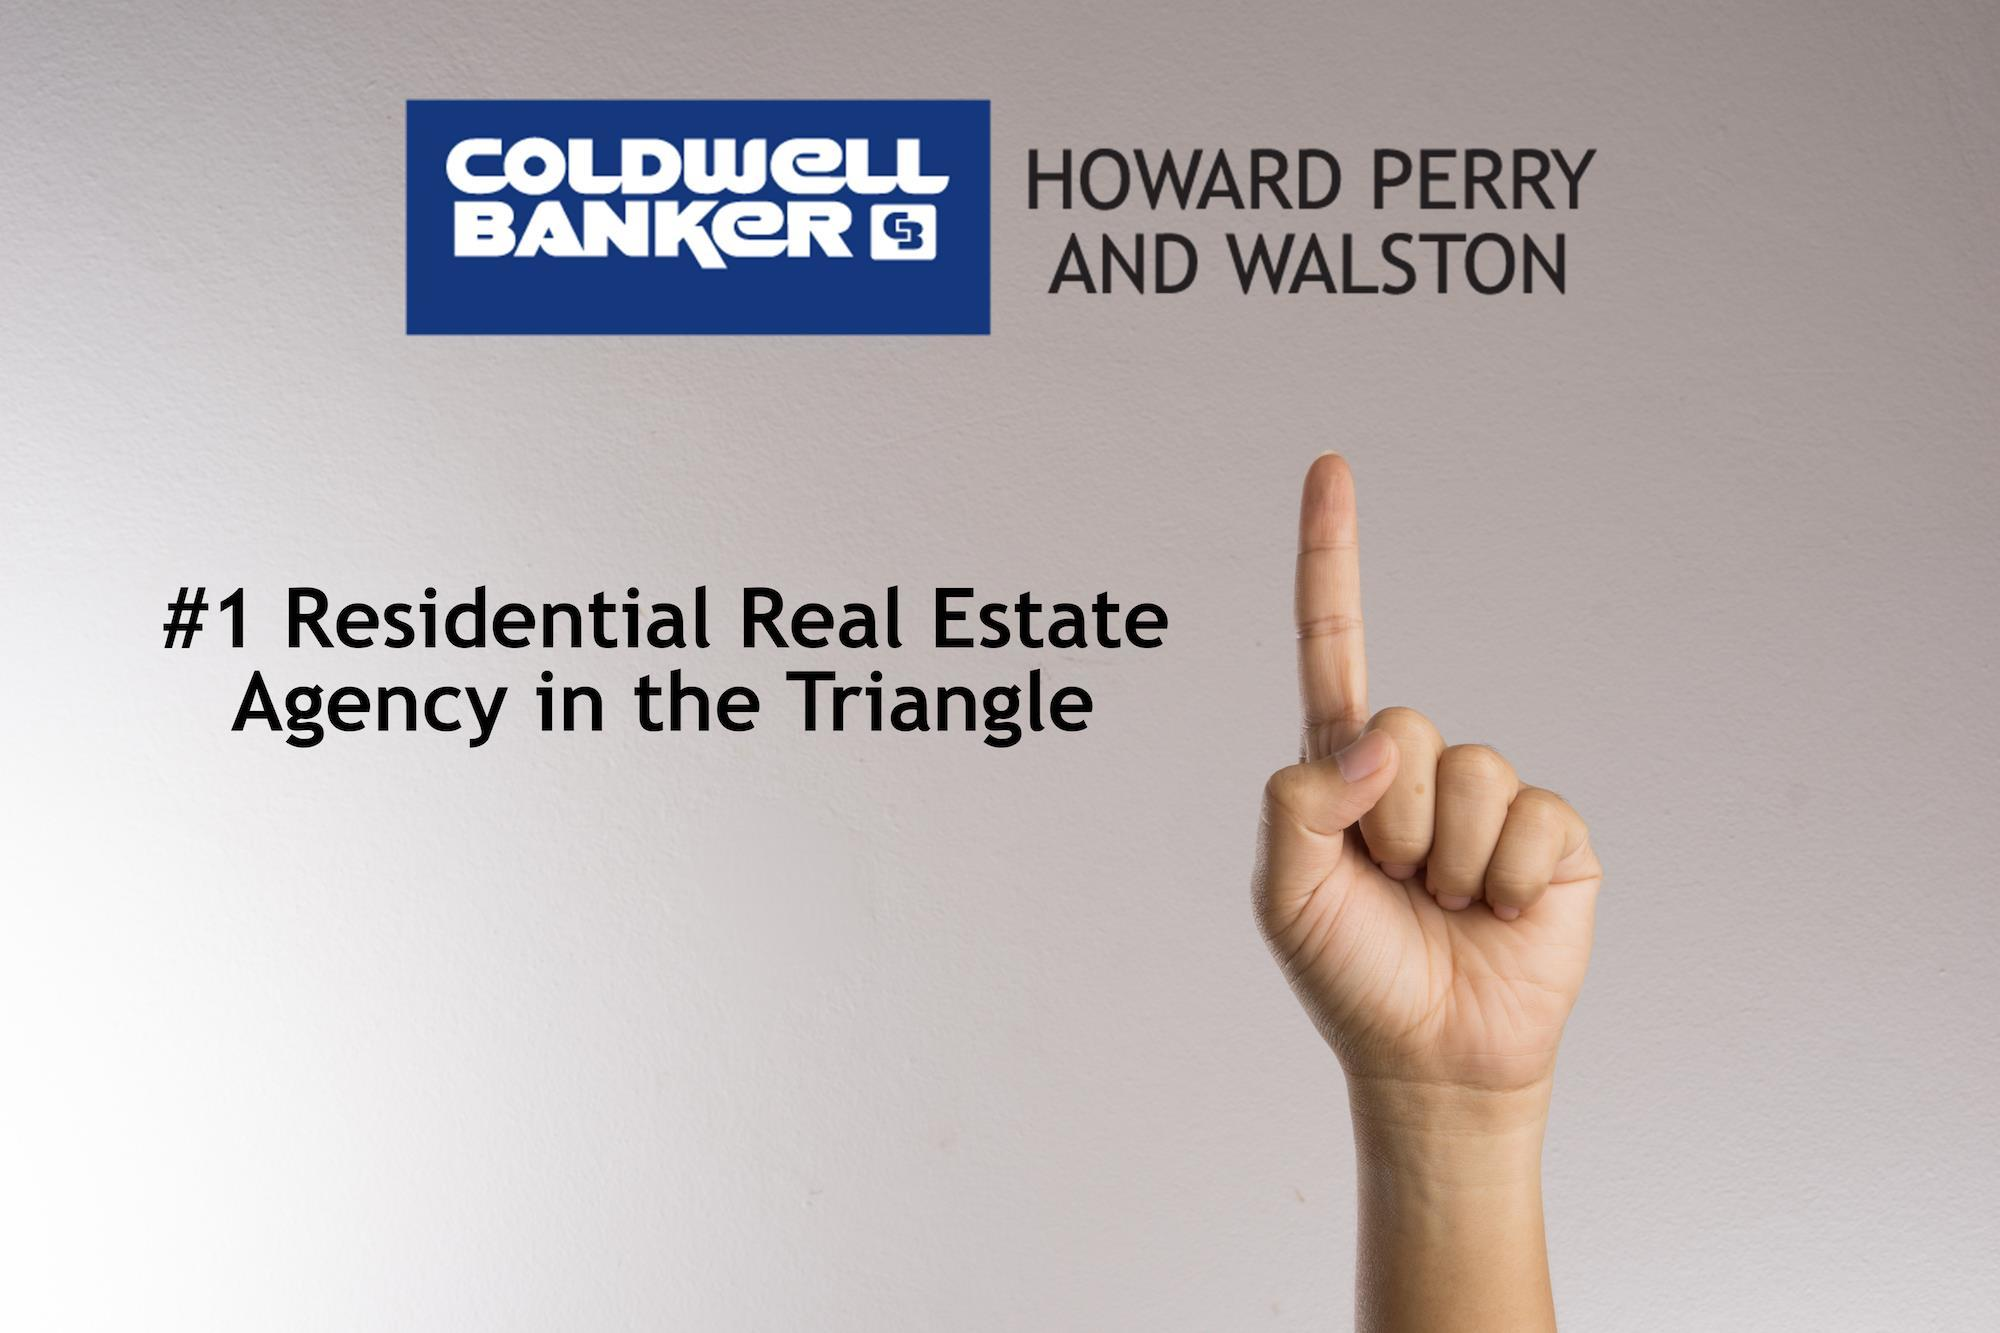 Coldwell Banker Howard Perry and Walston image 3